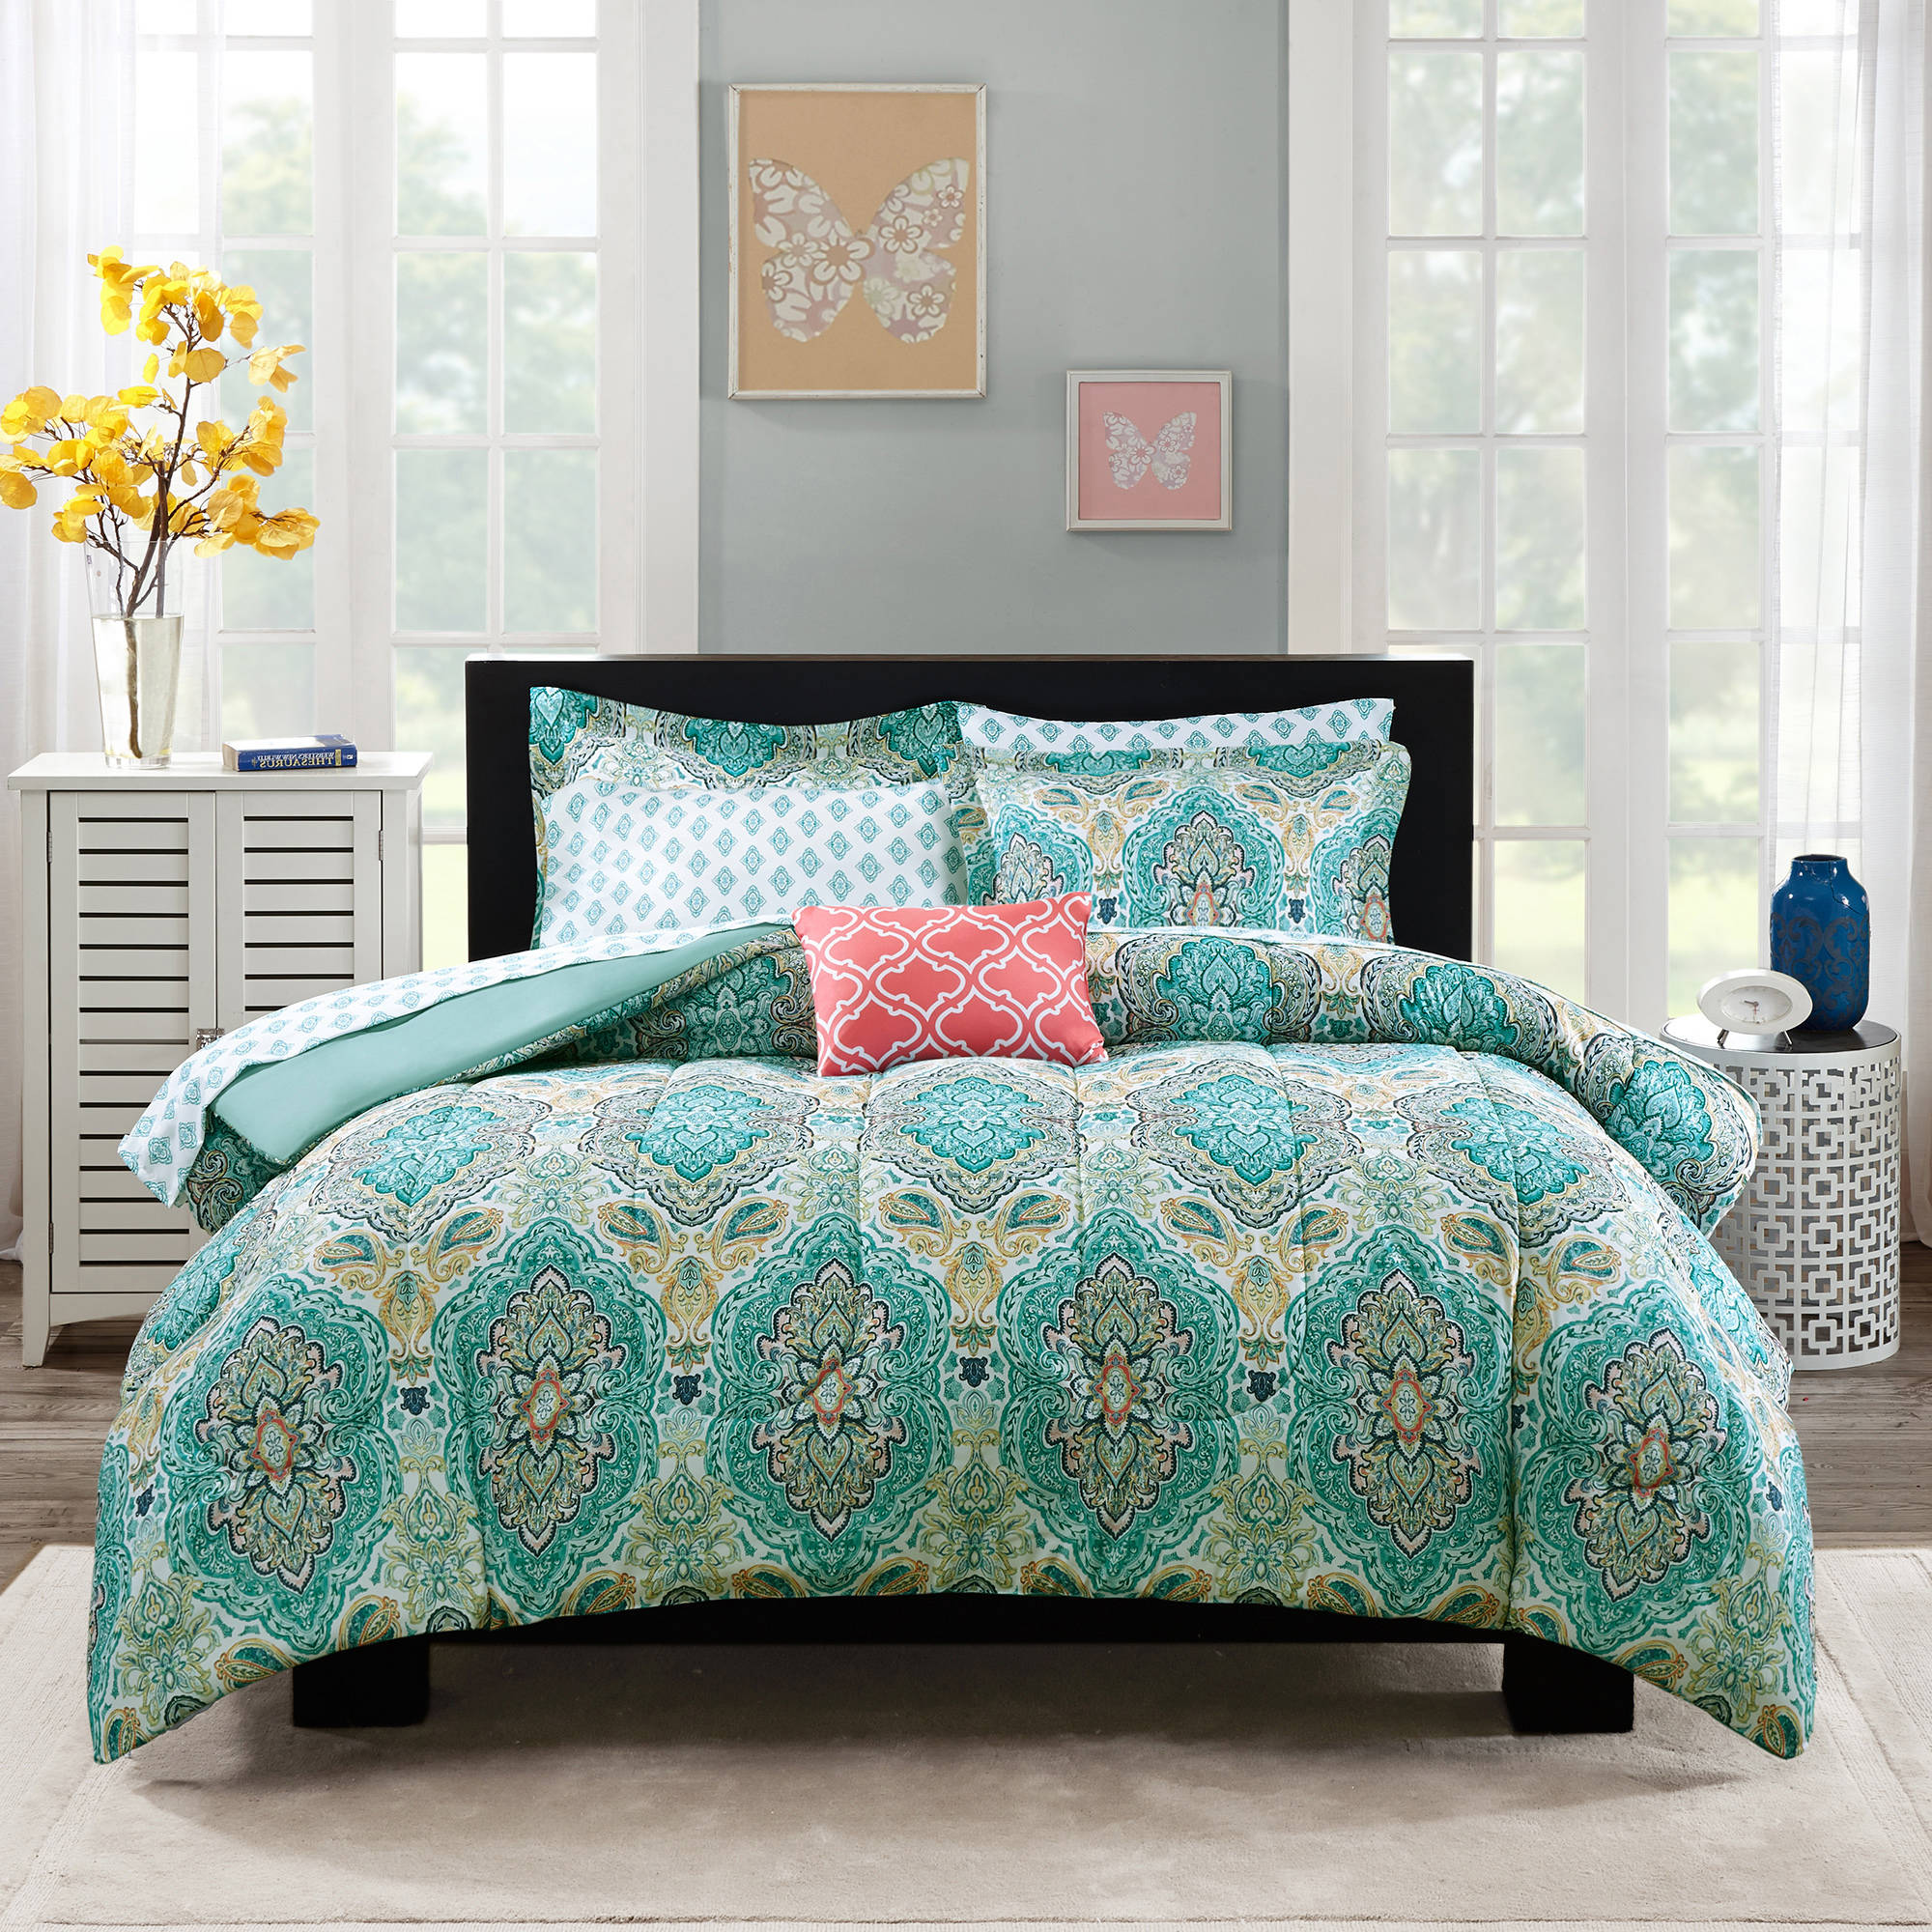 Bedding sets for teenage girls walmart - Mainstays Monique Paisley Coordinated Bedding Set